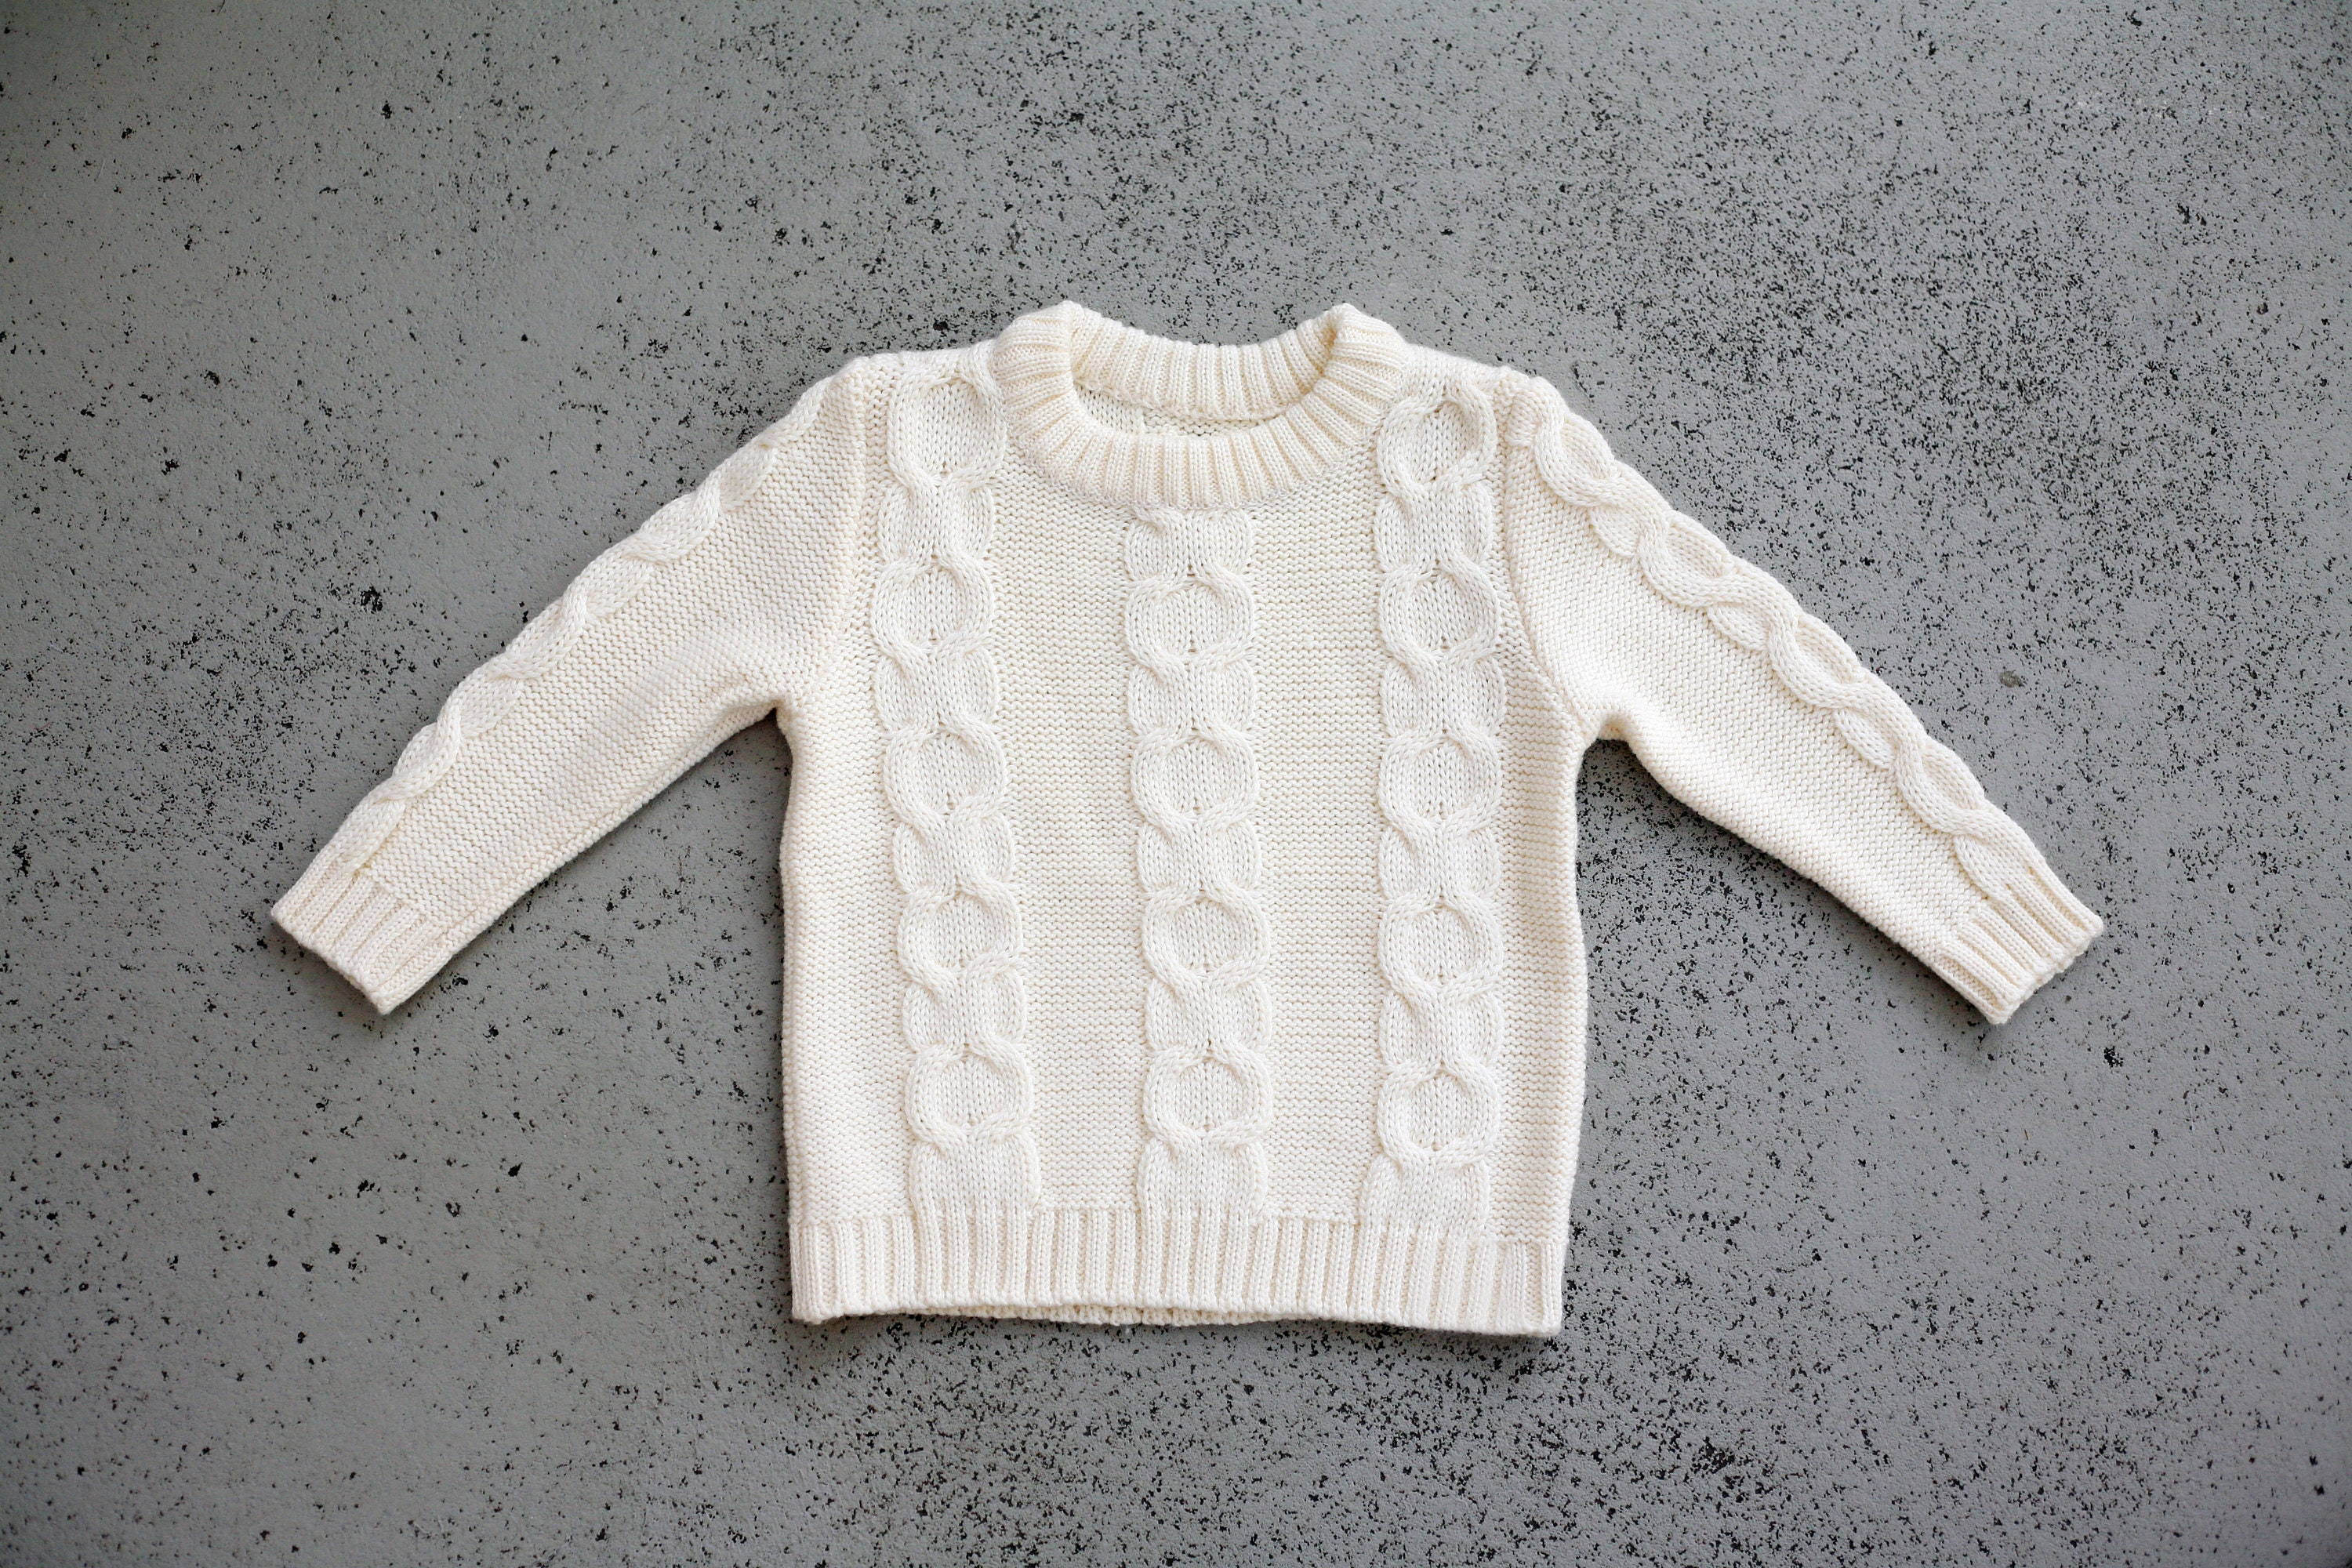 bca560903307 Knit sweater Baby Clothes Toddler clothes Knit cable sweater